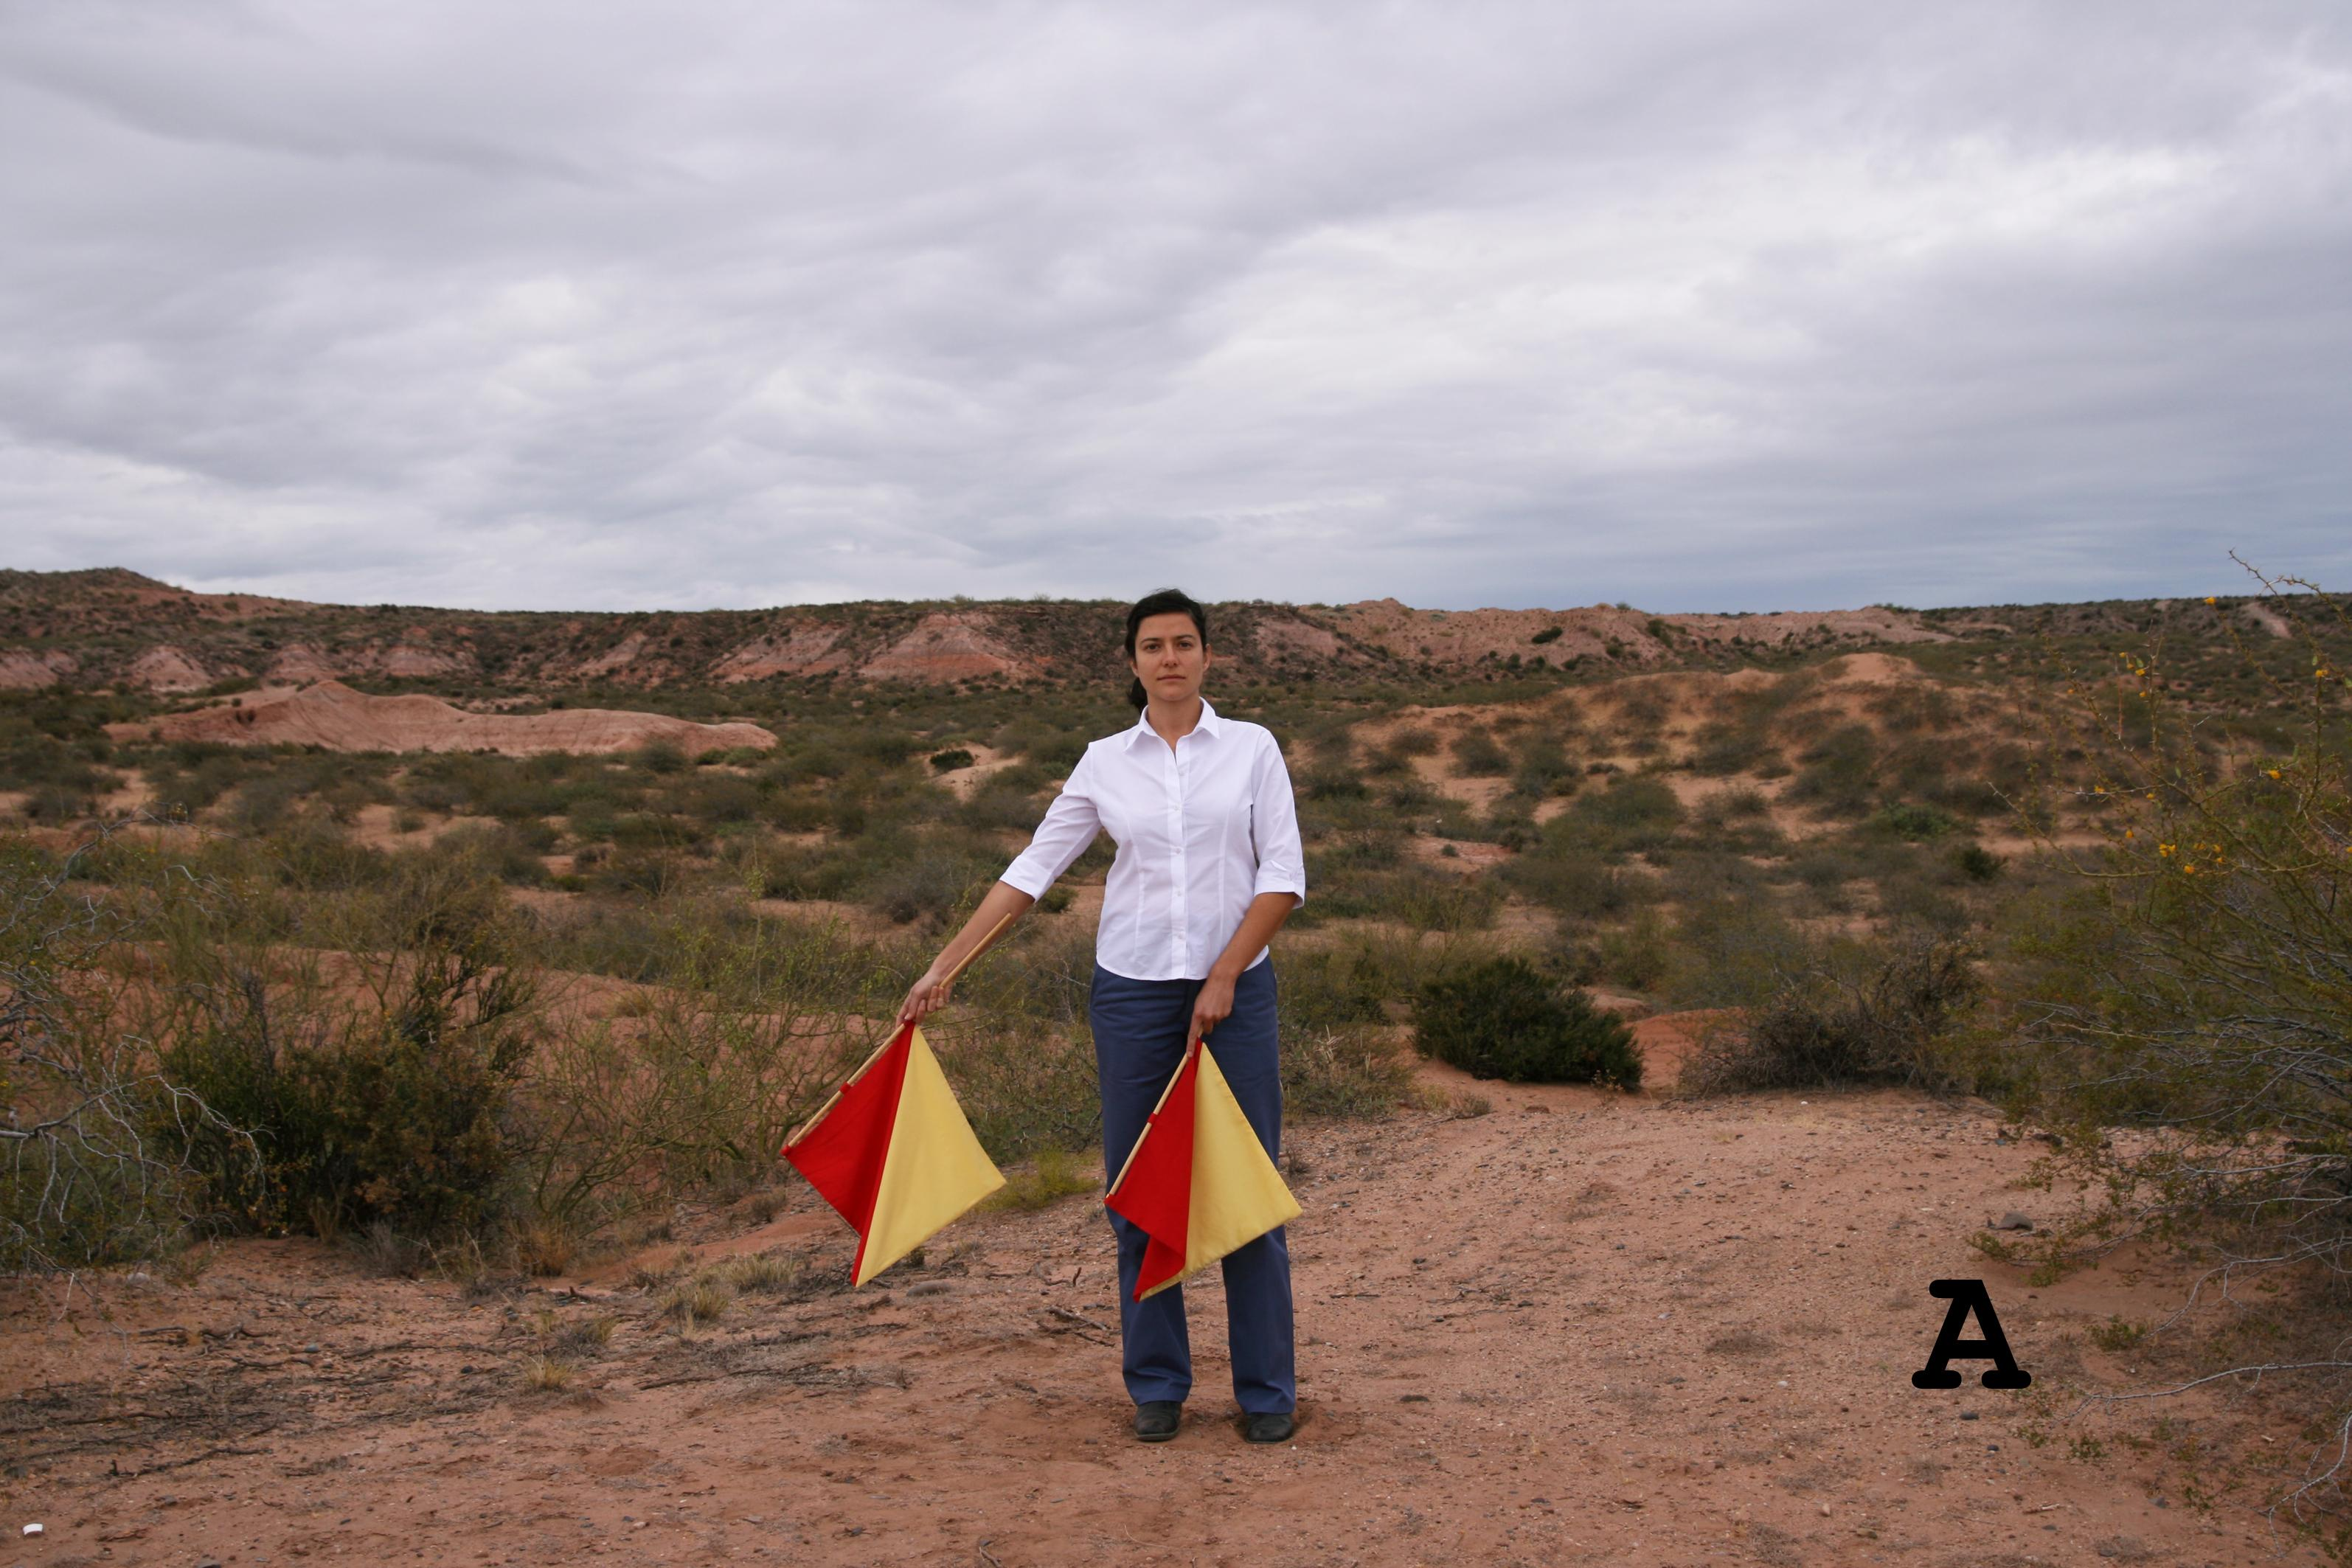 A person stares at the viewer while holding two flags in the desert.